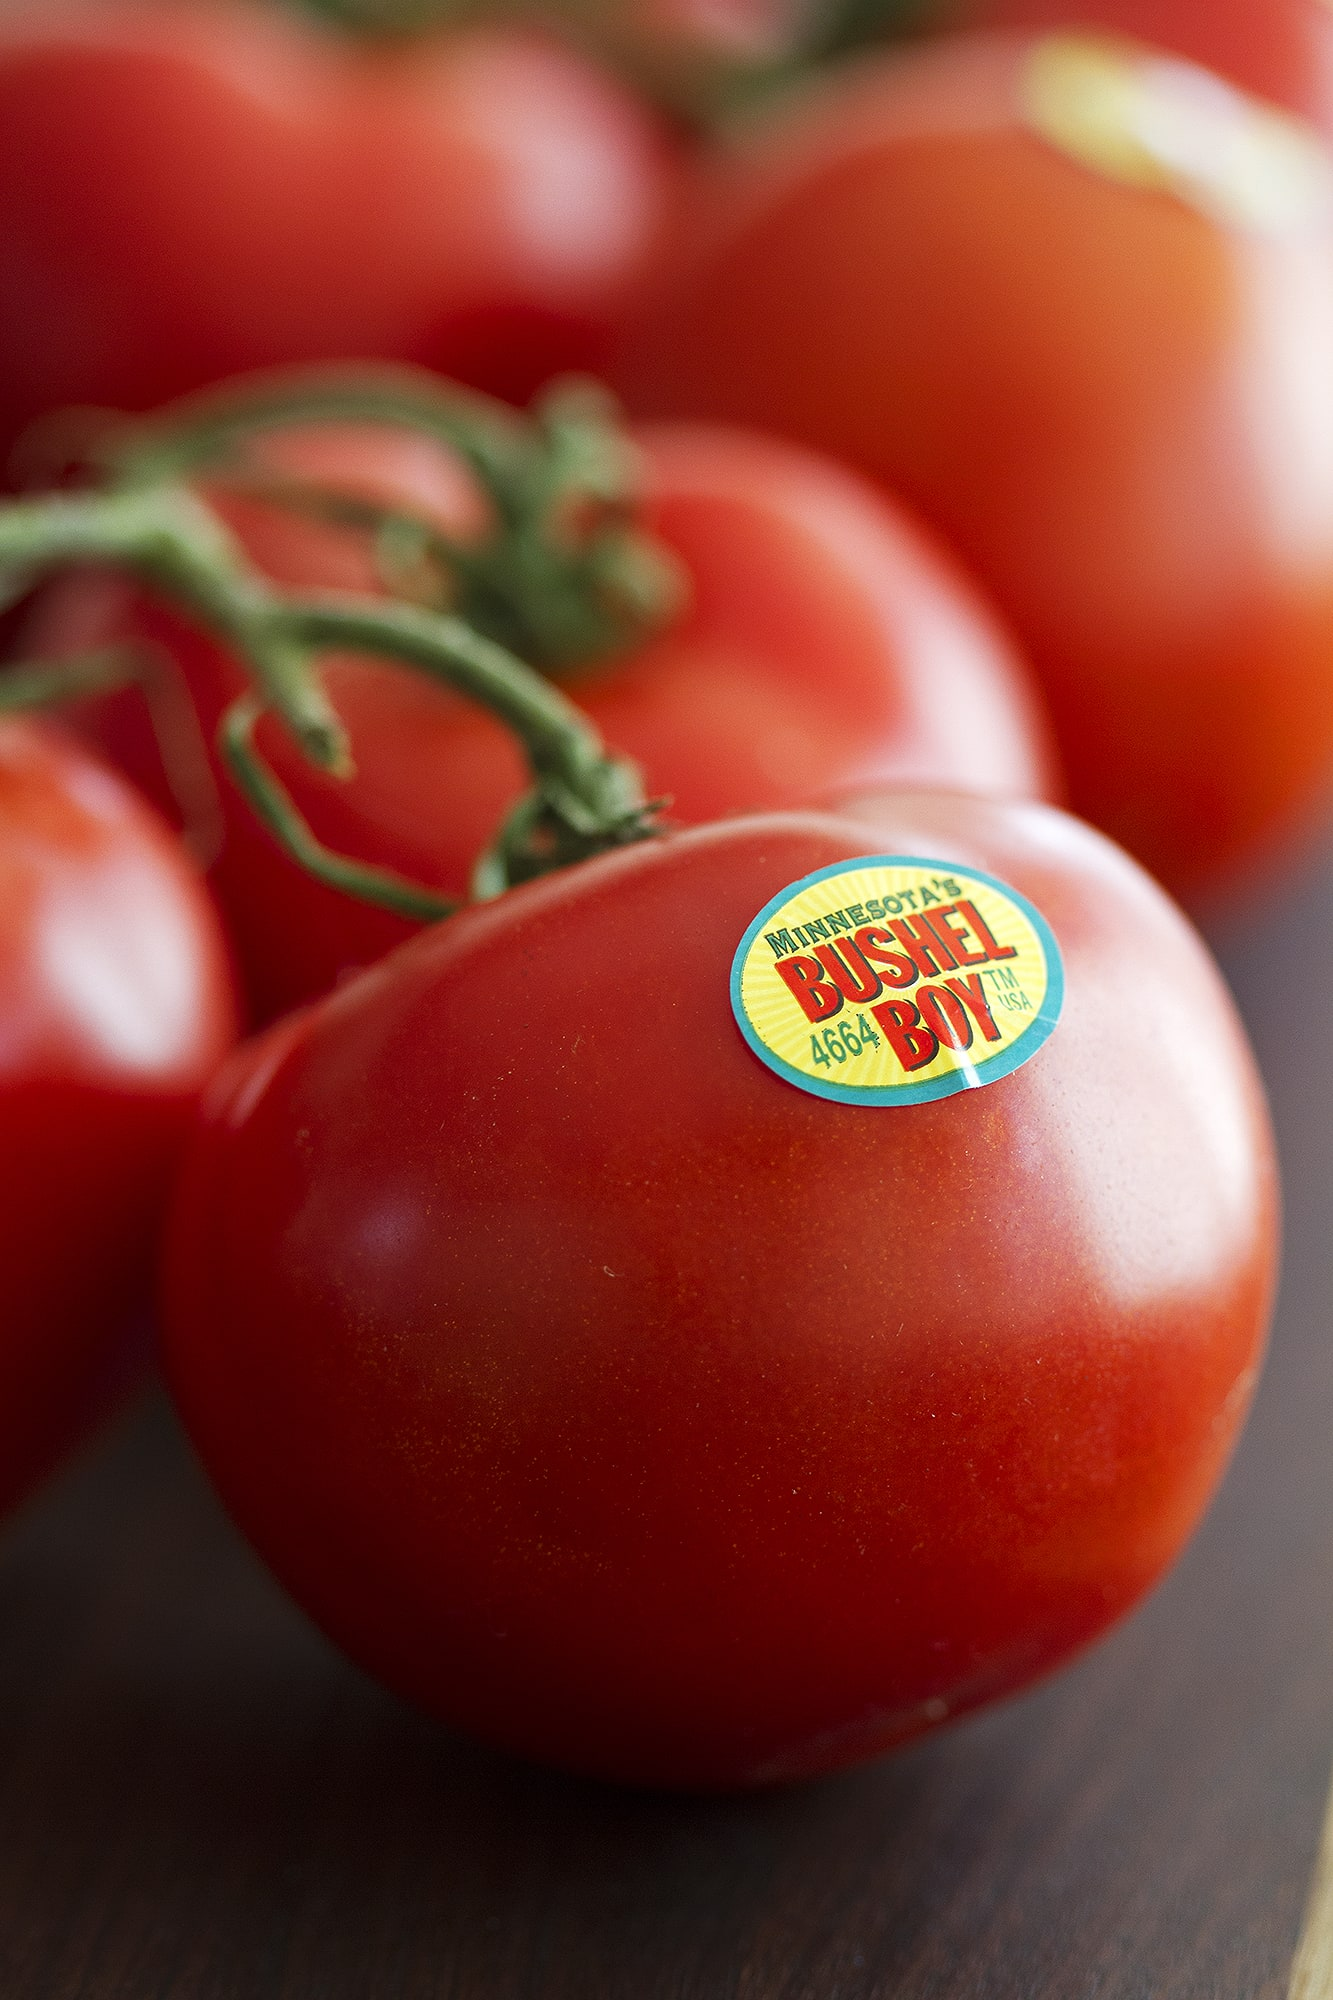 tomato with bushel boy sticker